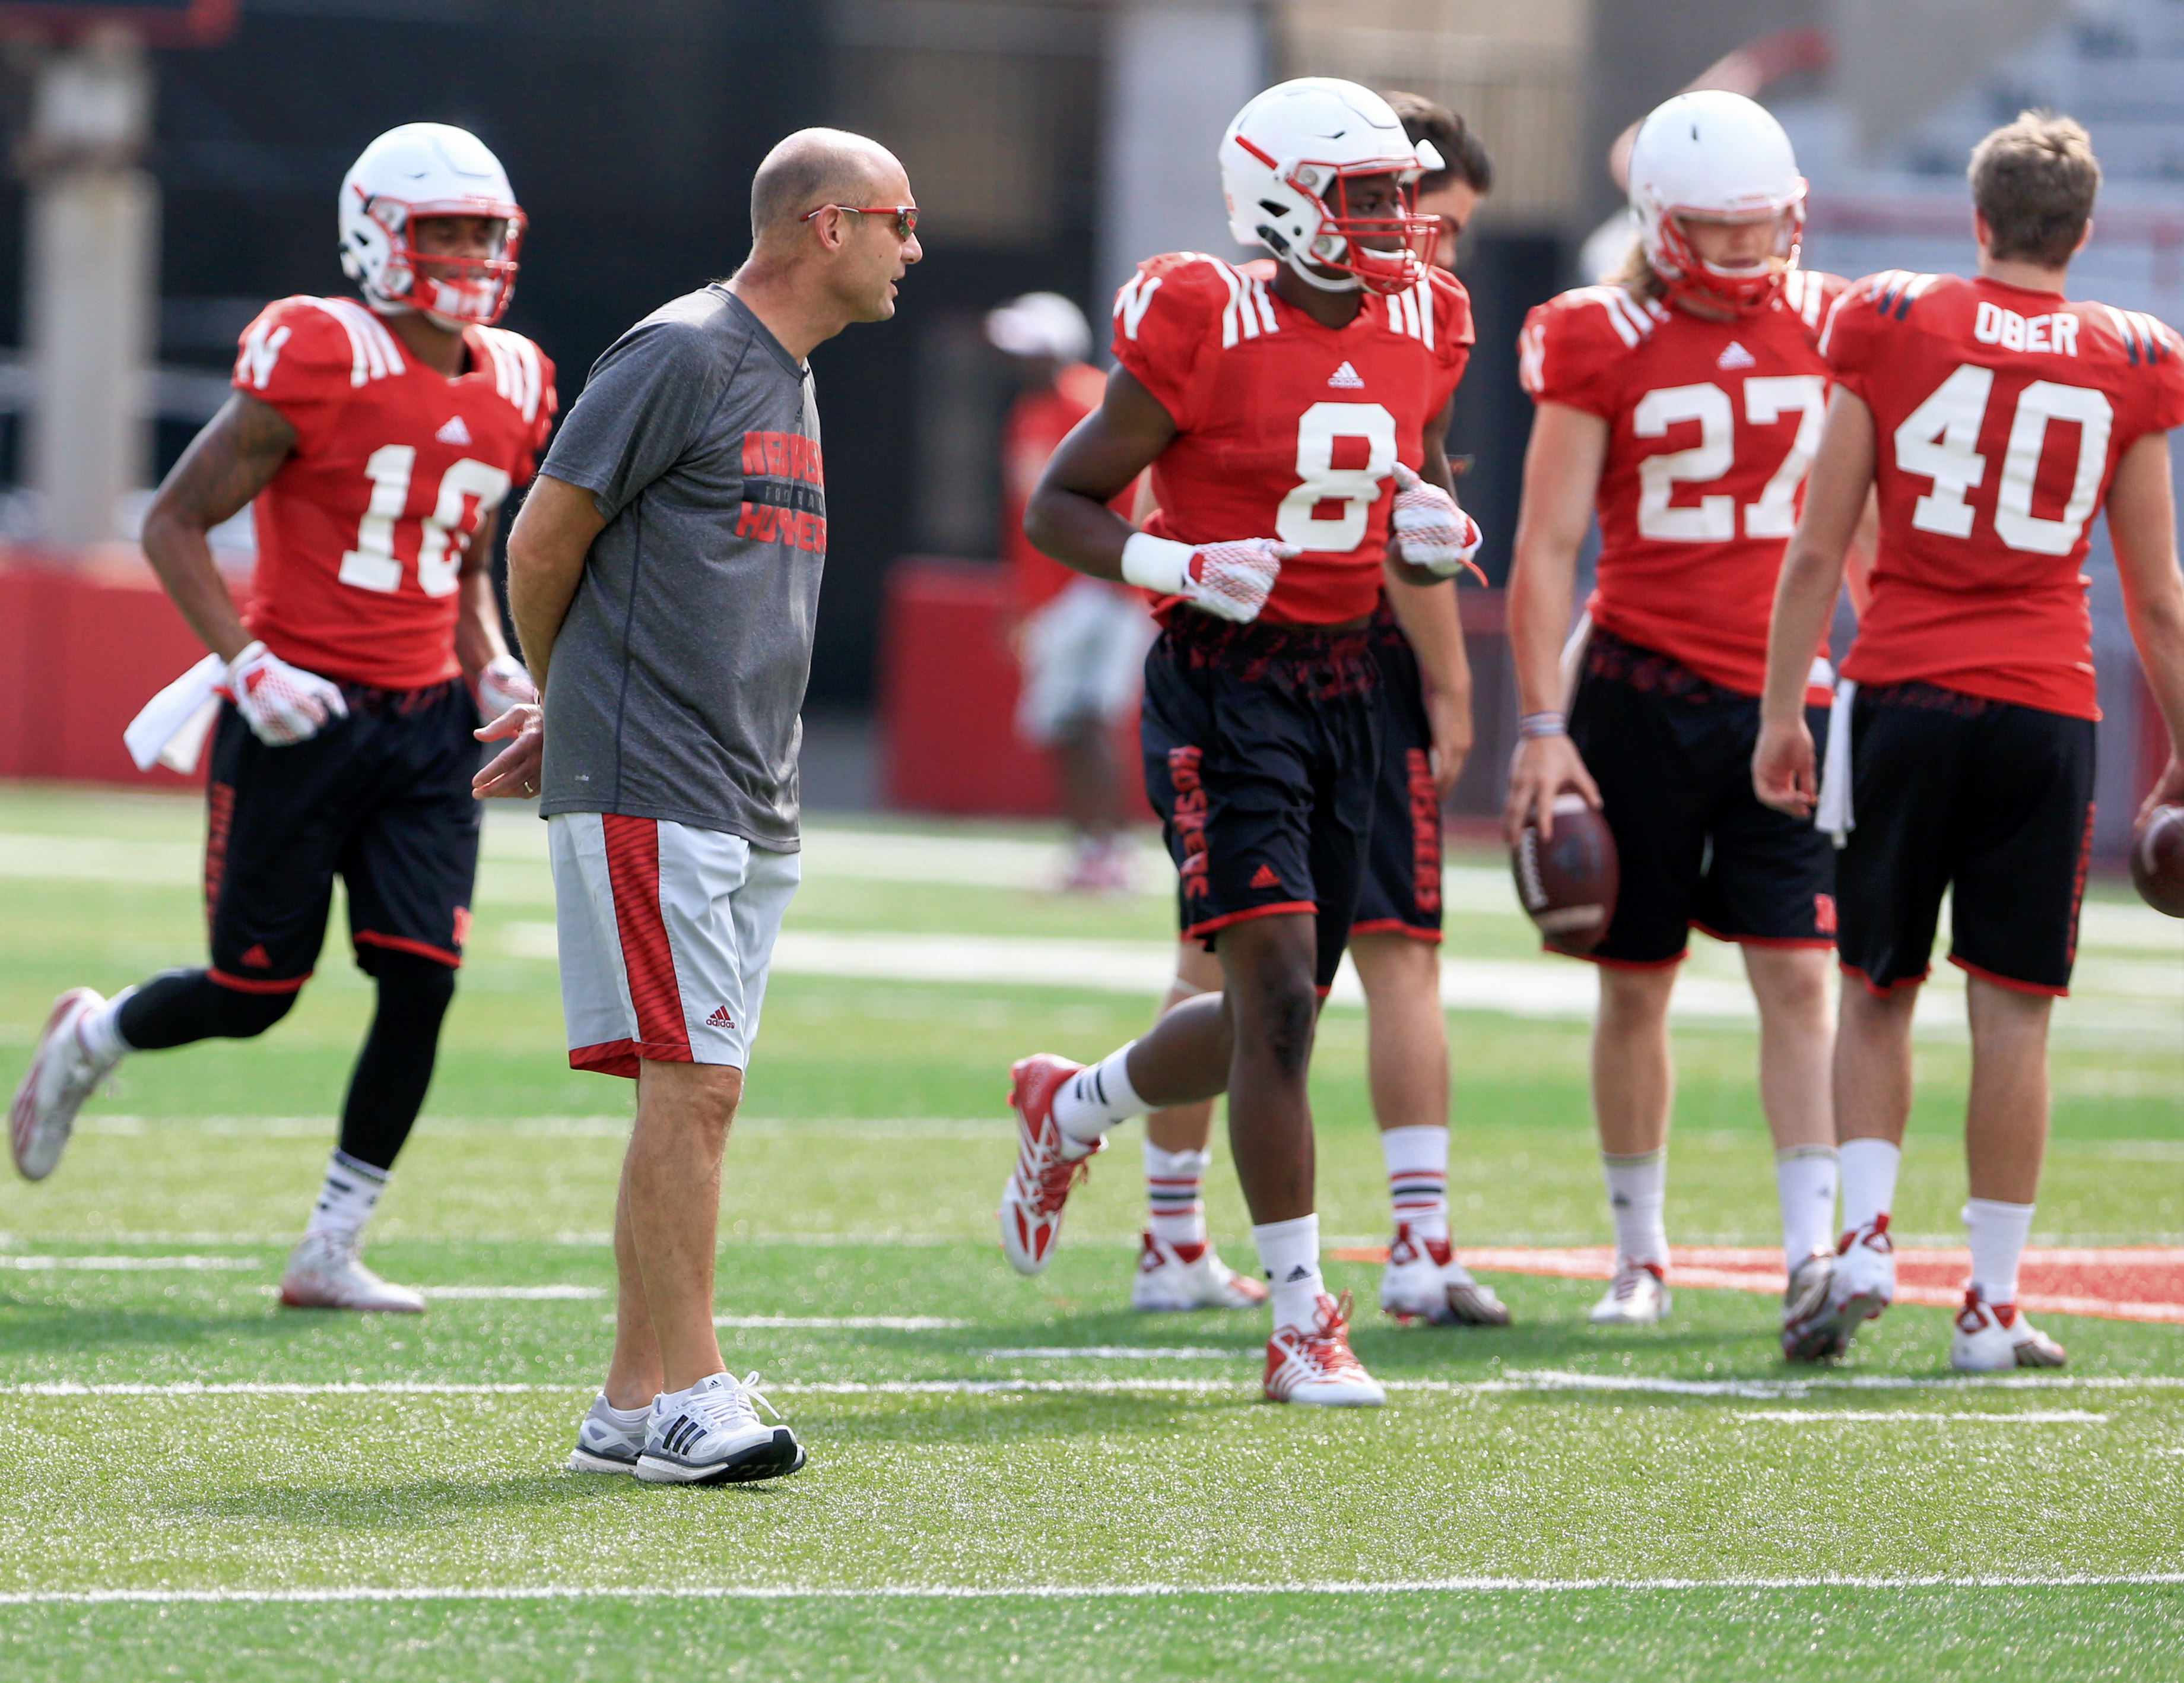 FILE - In this Tuesday, Sept. 1, 2015 file photo, Nebraska head coach Mike Riley follows NCAA college football practice in Lincoln, Neb. Even before Ivy League coaches voted to eliminate full-contact practices from the regular season, teams all across col